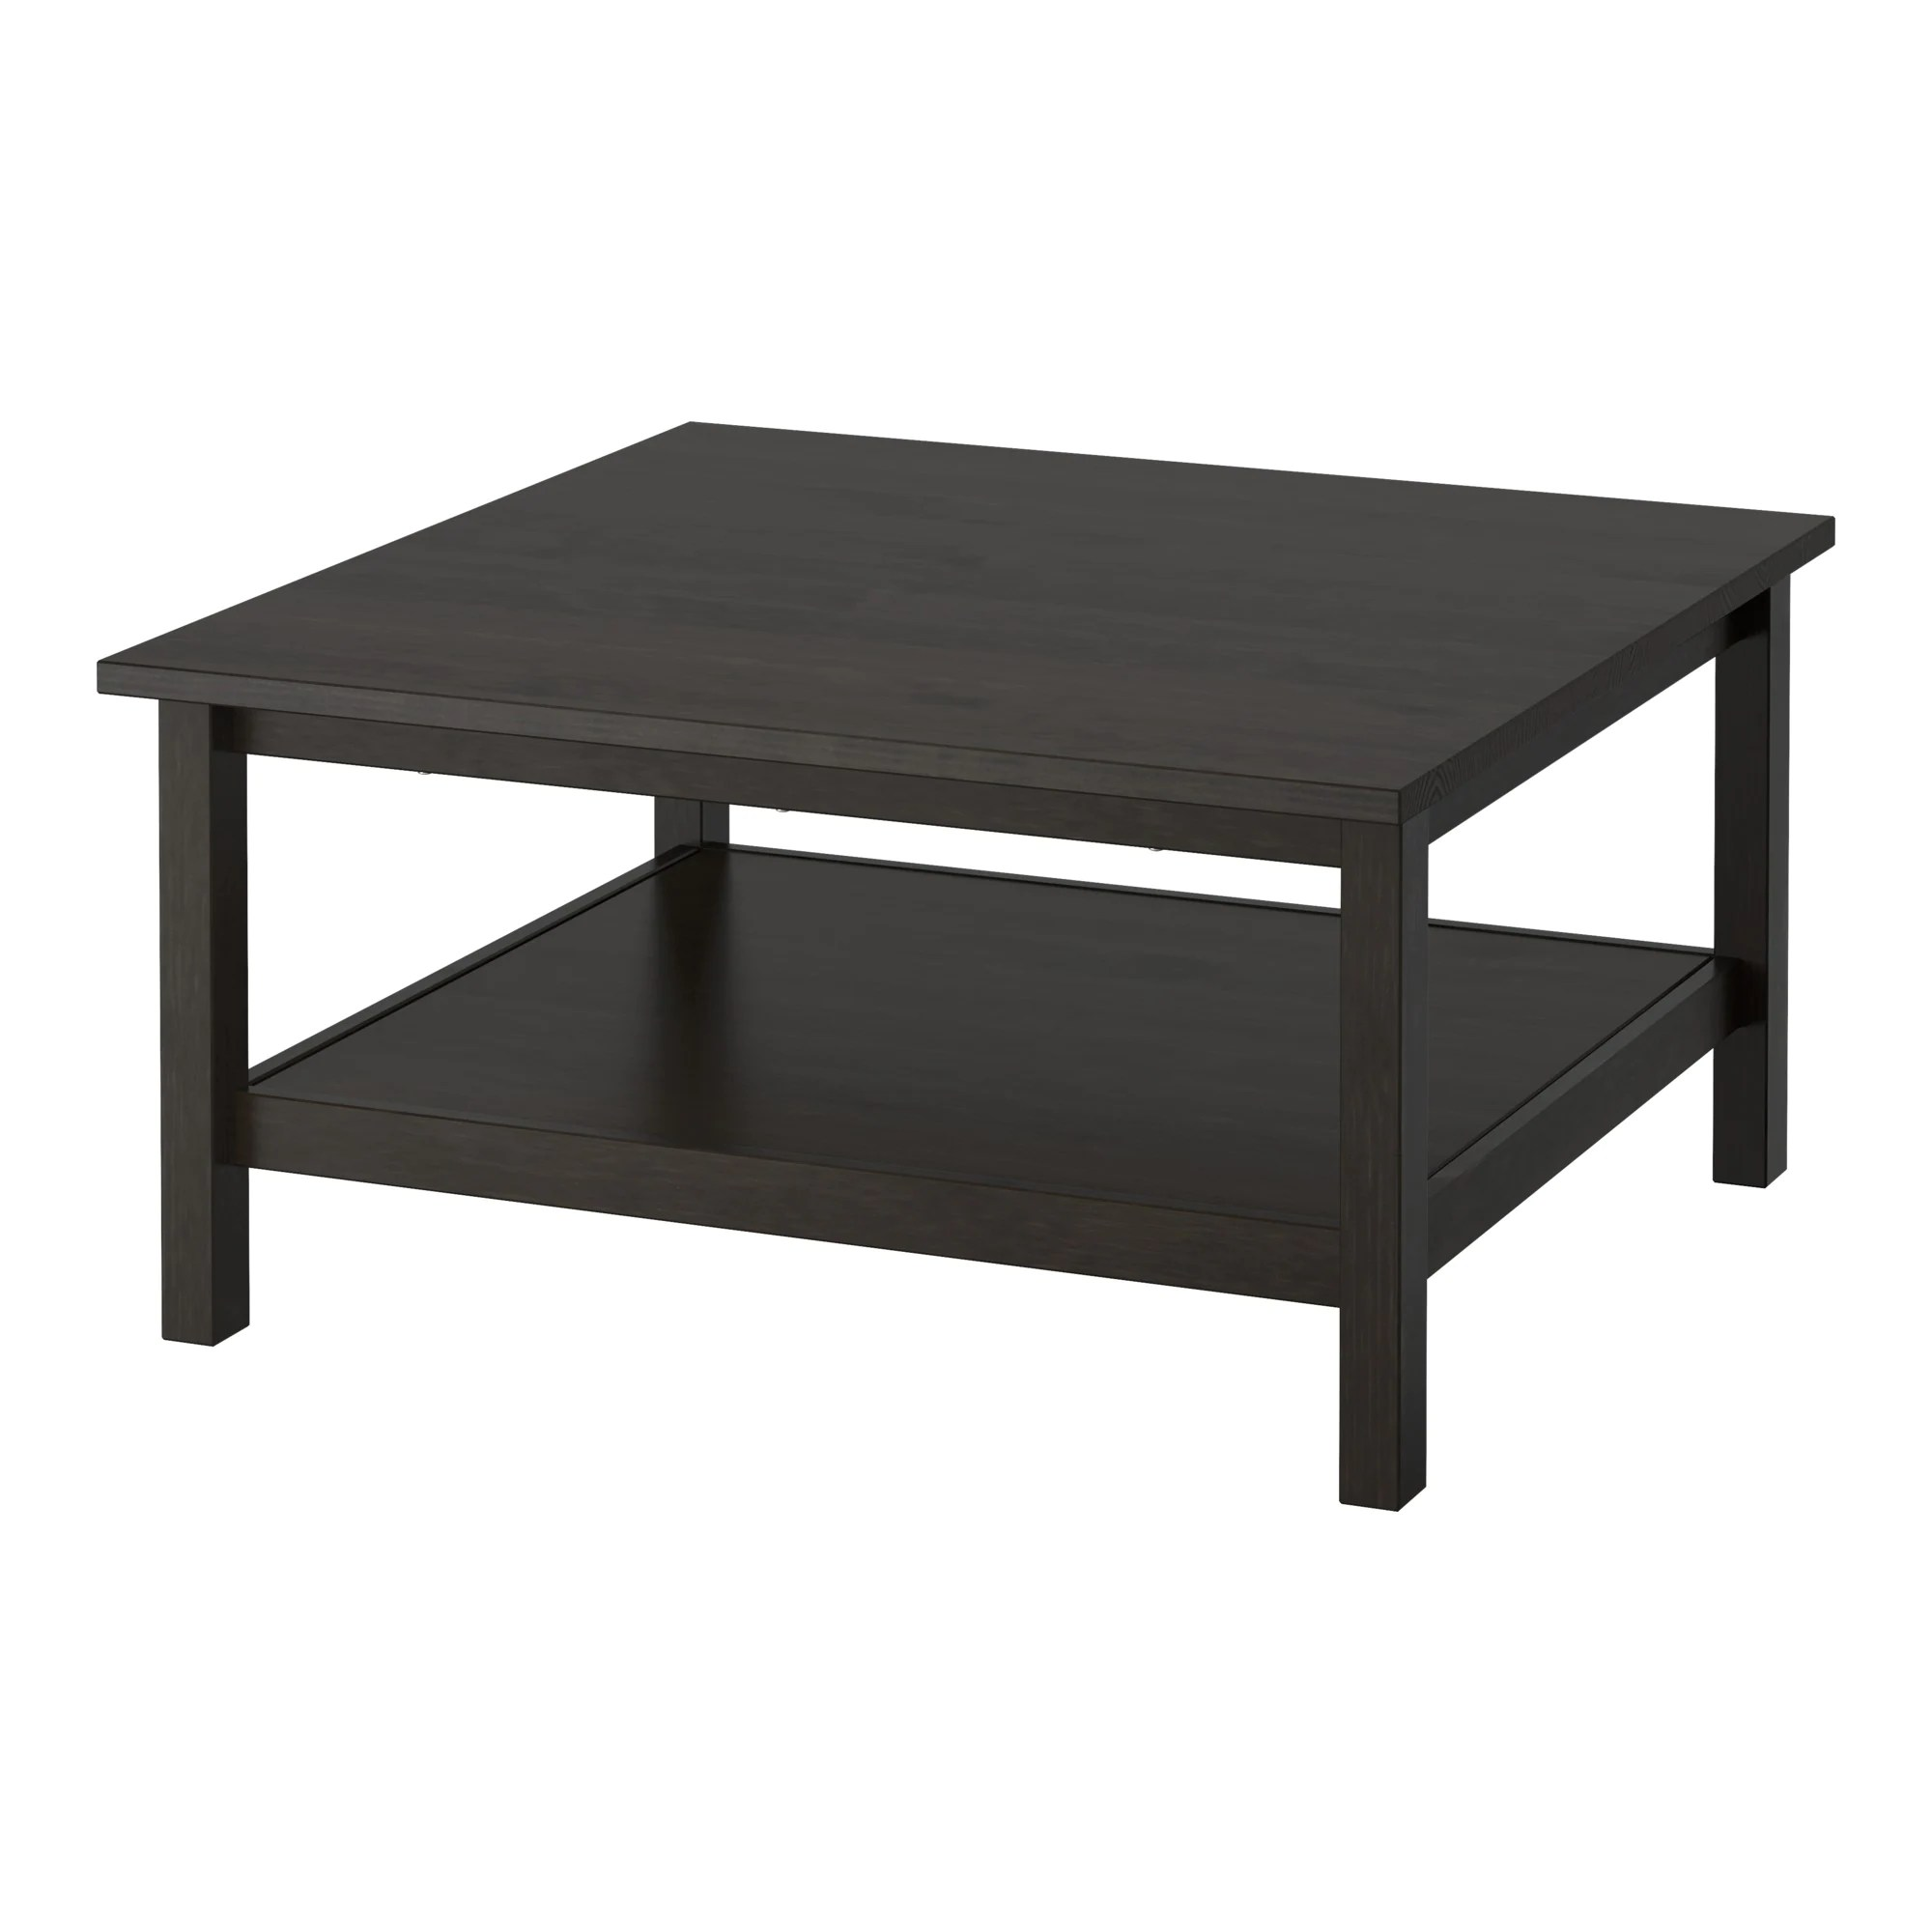 Couchtisch Ikea Hemnes Coffee Table Hemnes Black Brown